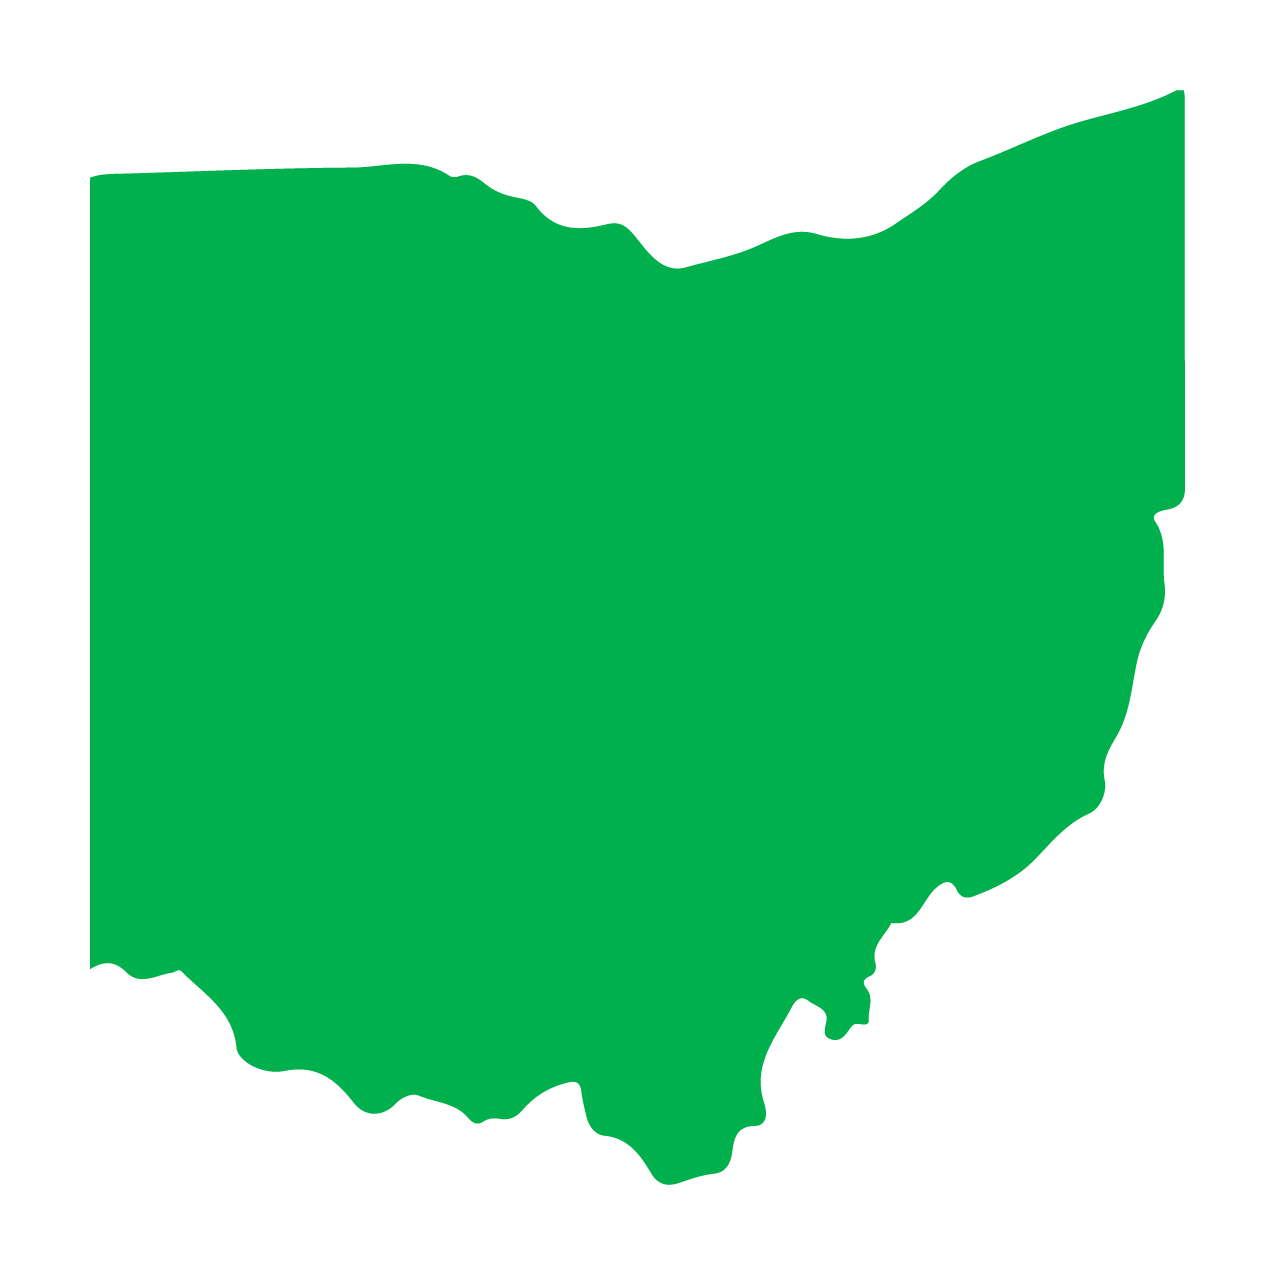 States_Ohio.png